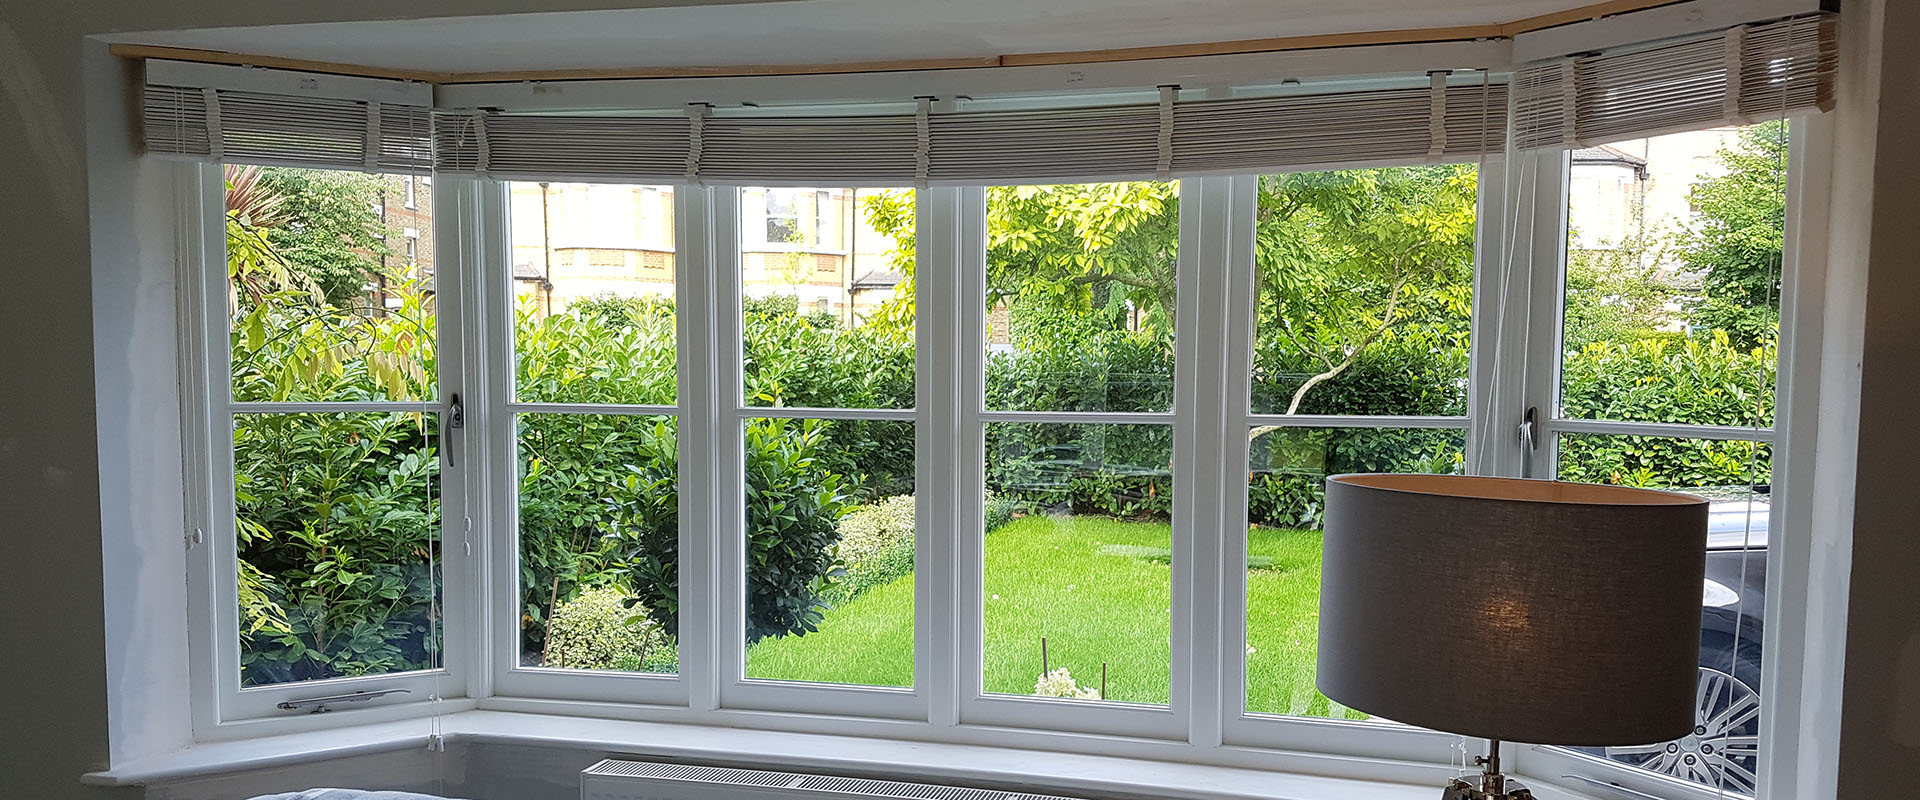 Bespoke Wooden Windows and Doors In Kent